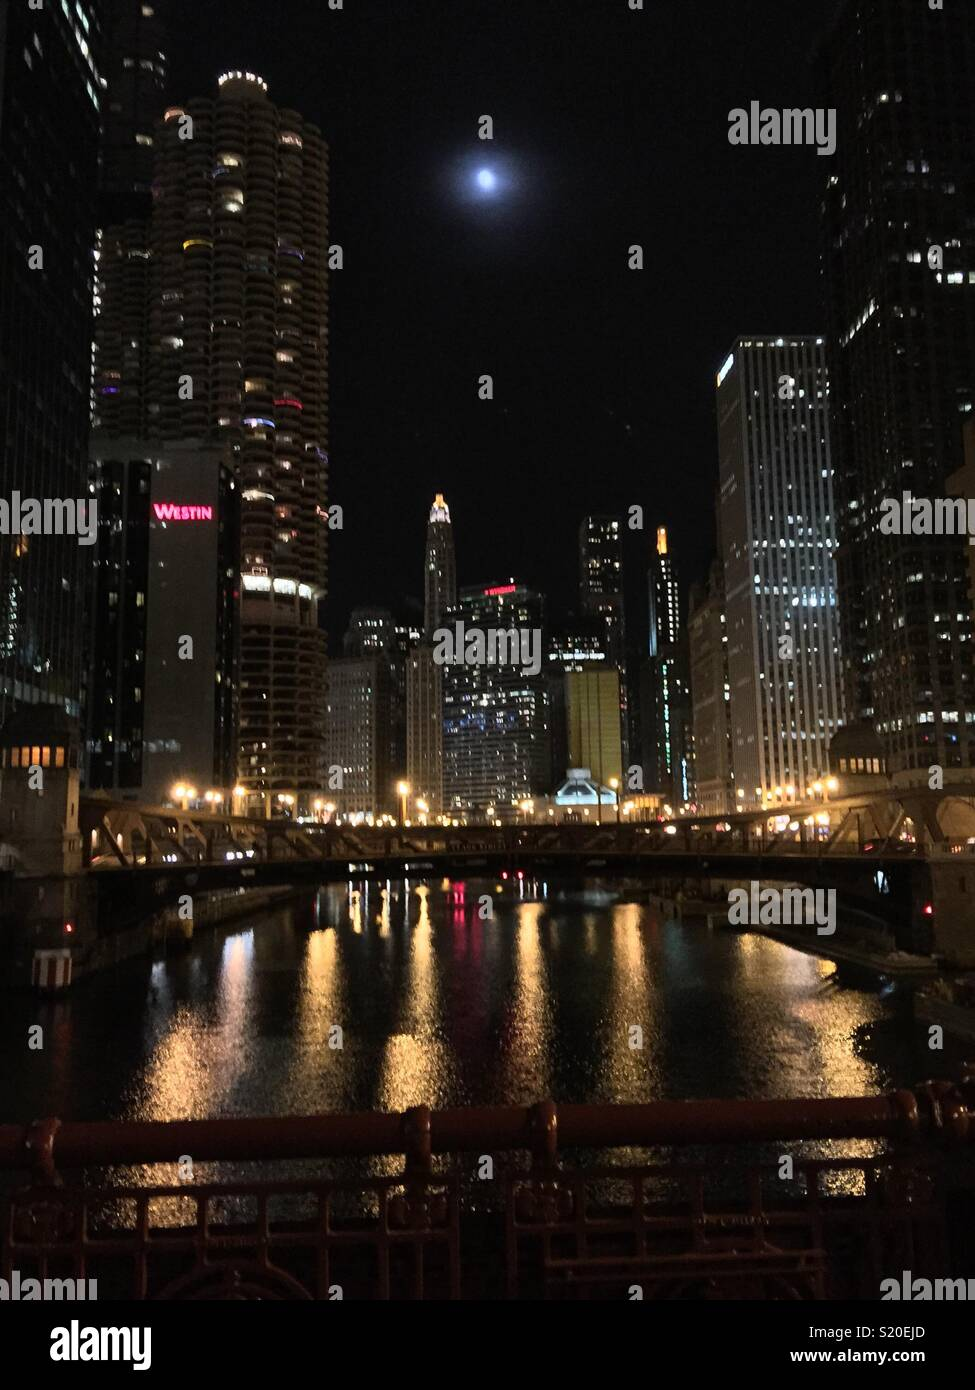 Night time in the Windy City - Stock Image